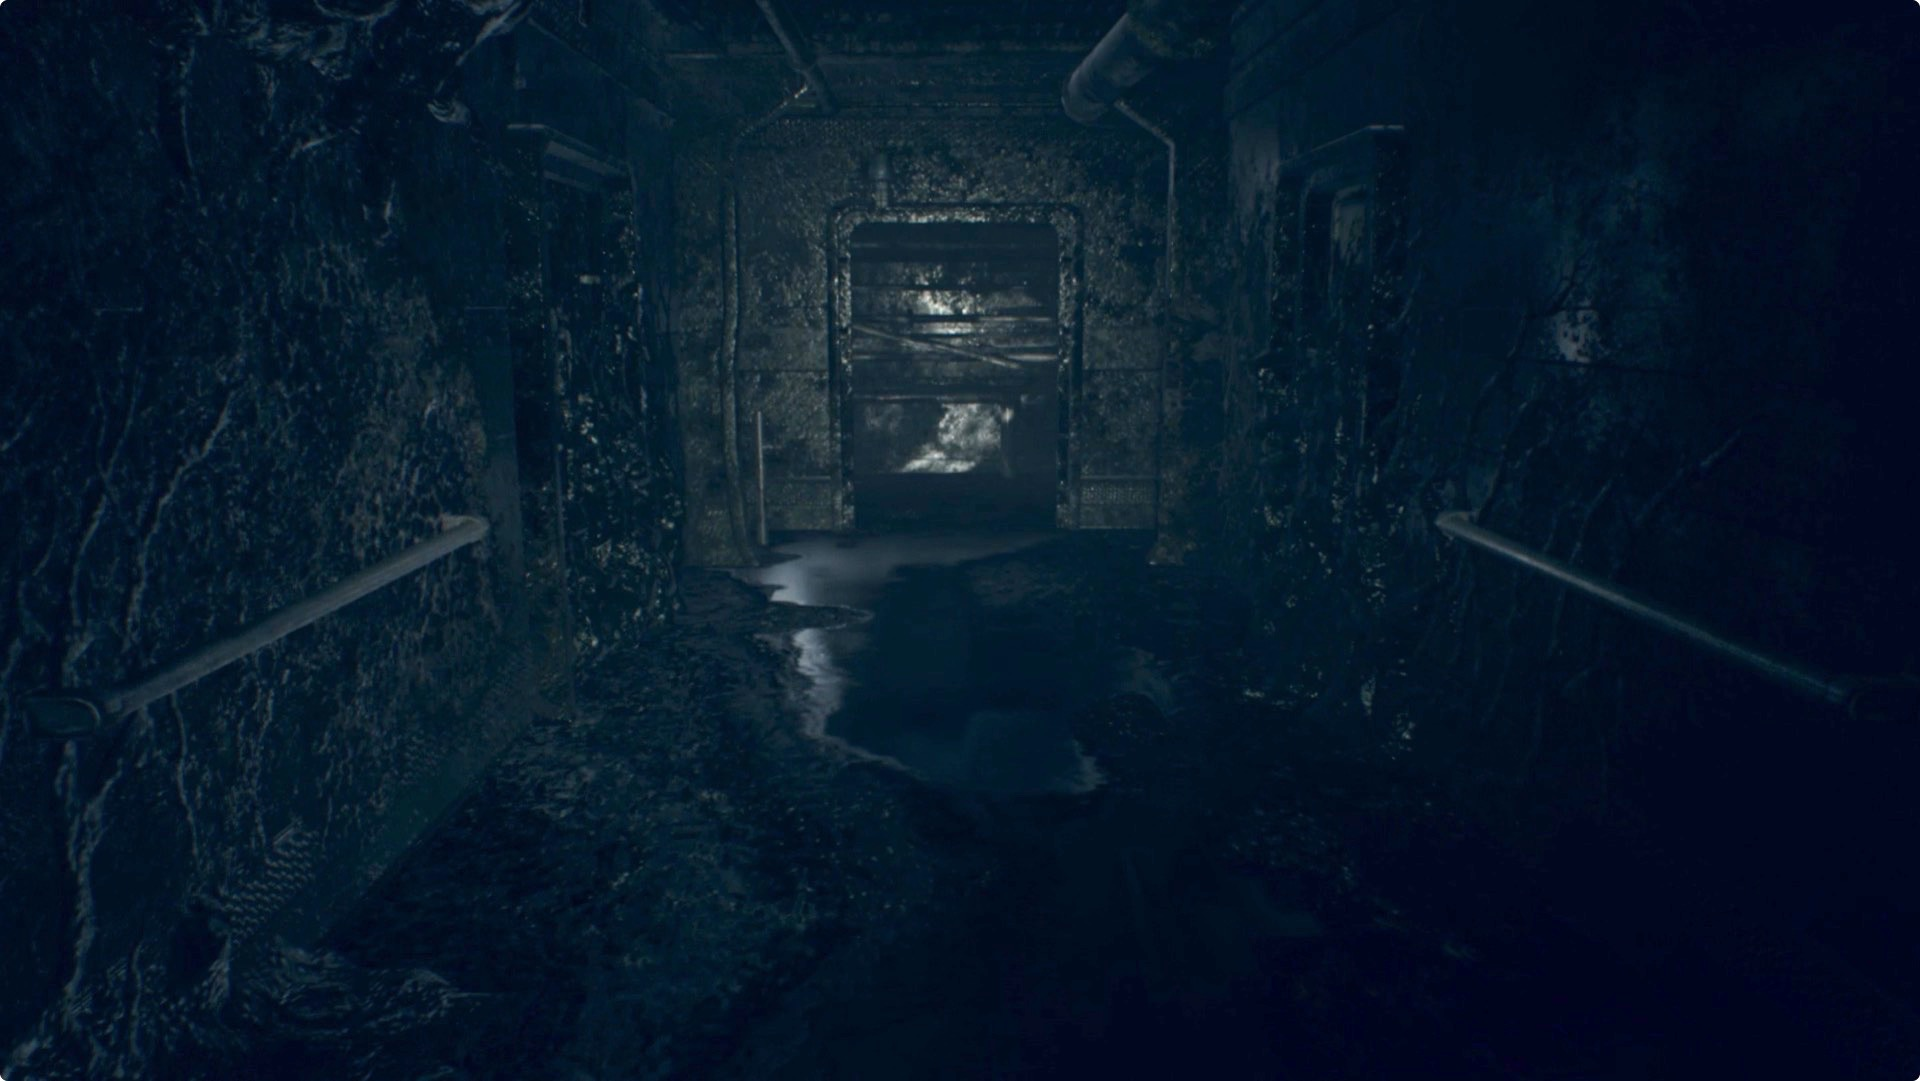 resident evil 7 biohazard walkthrough 6 0 wrecked ship (all Resident Evil 7 Fuse Box continue forward and go up the stairs and head into the ship there's only one hallway for you to follow for now just keep following it (it will turn right resident evil 7 fuse box